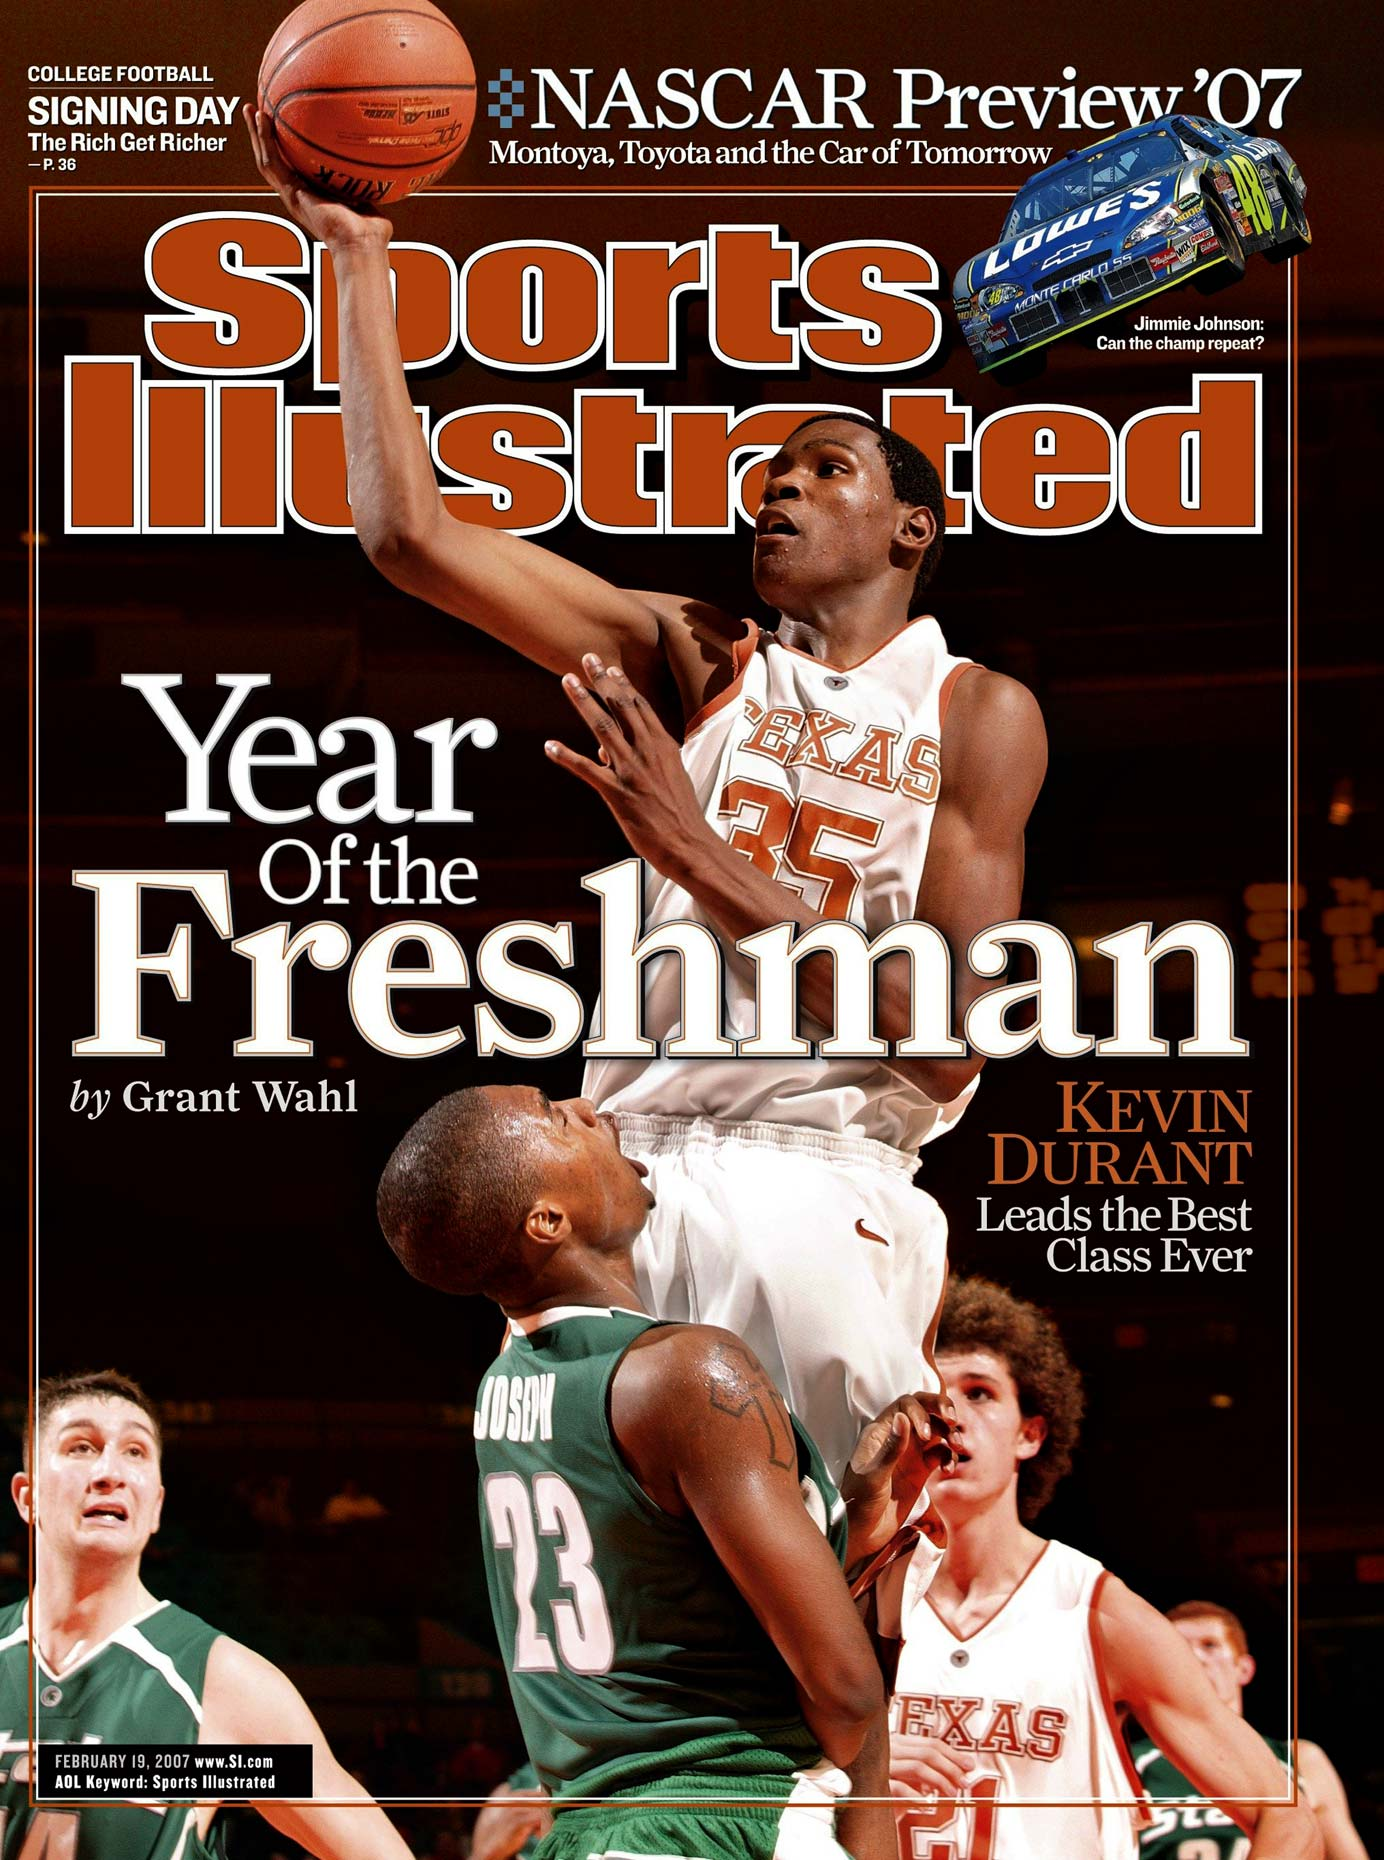 Kevin Durant | Texas Basketball | Sports Illustrated Cover | Freshman